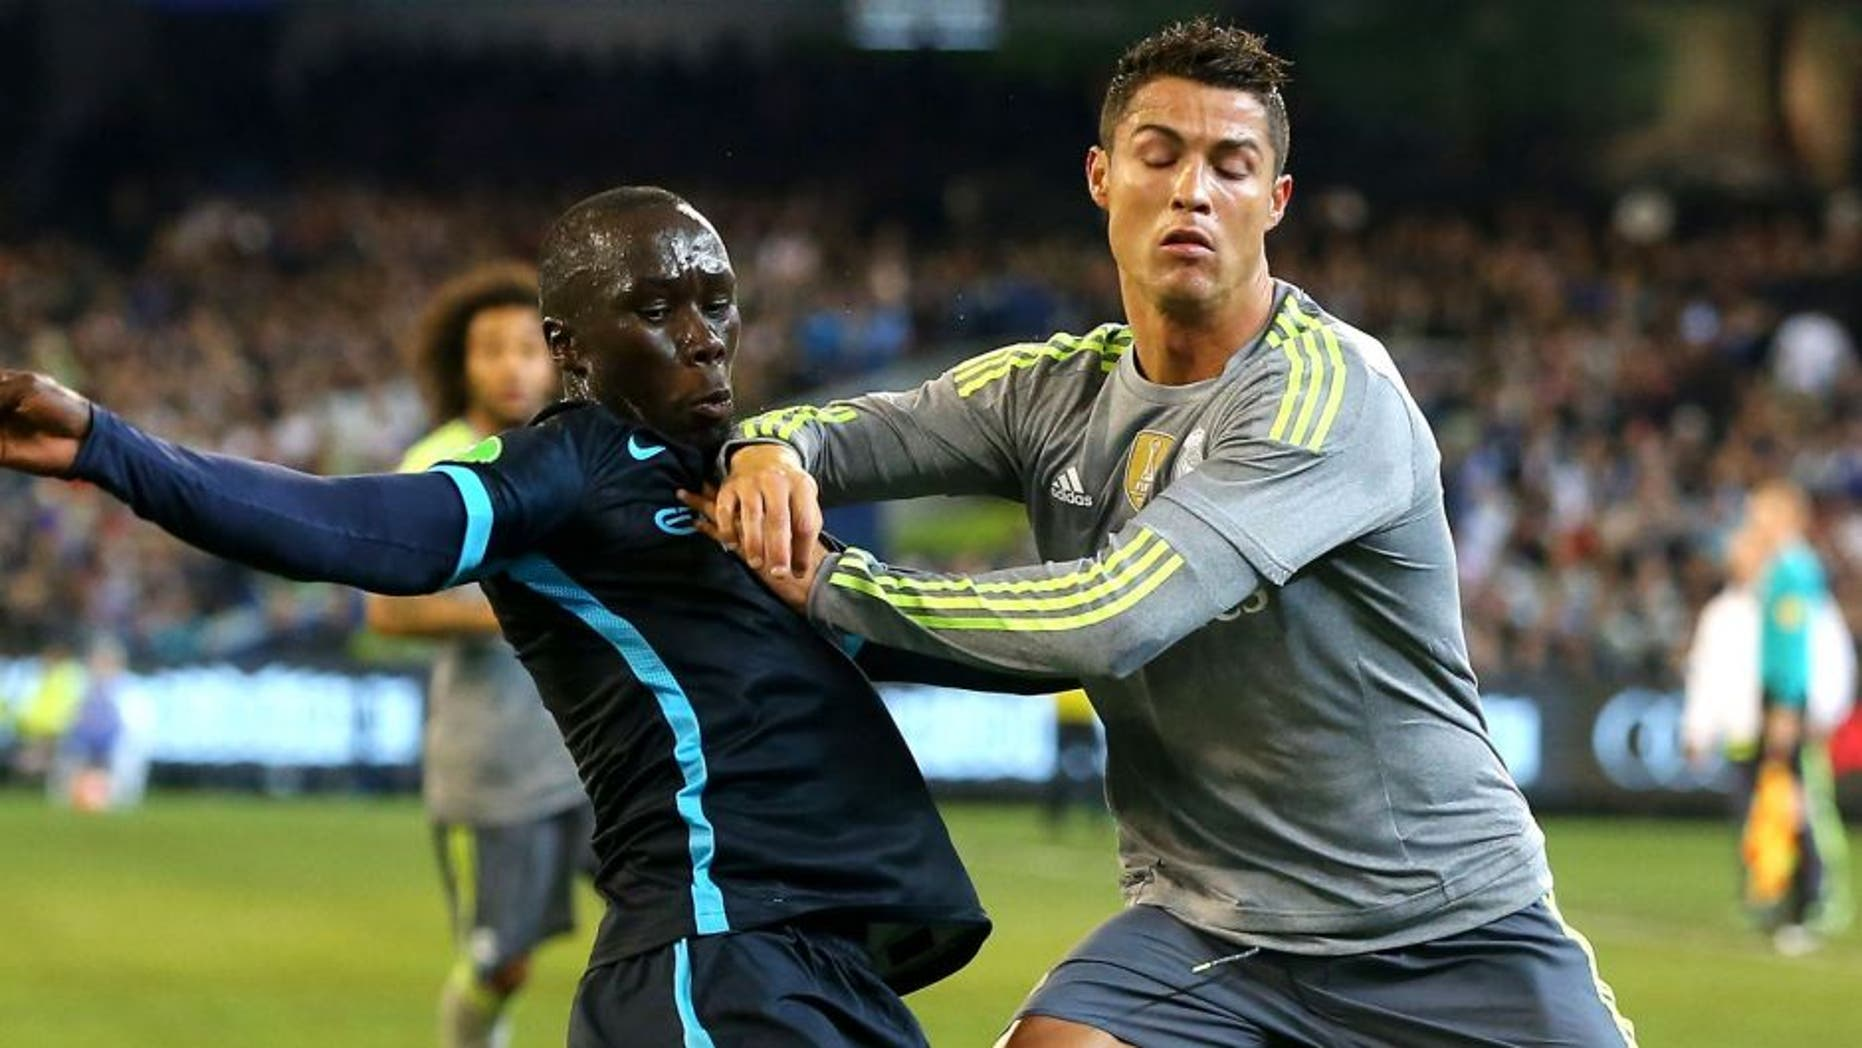 MELBOURNE, AUSTRALIA - JULY 24: Bacary Sagna of Manchester City and Cristiano Ronaldo of Real Madrid compete for the ball during the International Champions Cup match between Real Madrid and Manchester City at Melbourne Cricket Ground on July 24, 2015 in Melbourne, Australia. (Photo by Quinn Rooney/Getty Images)